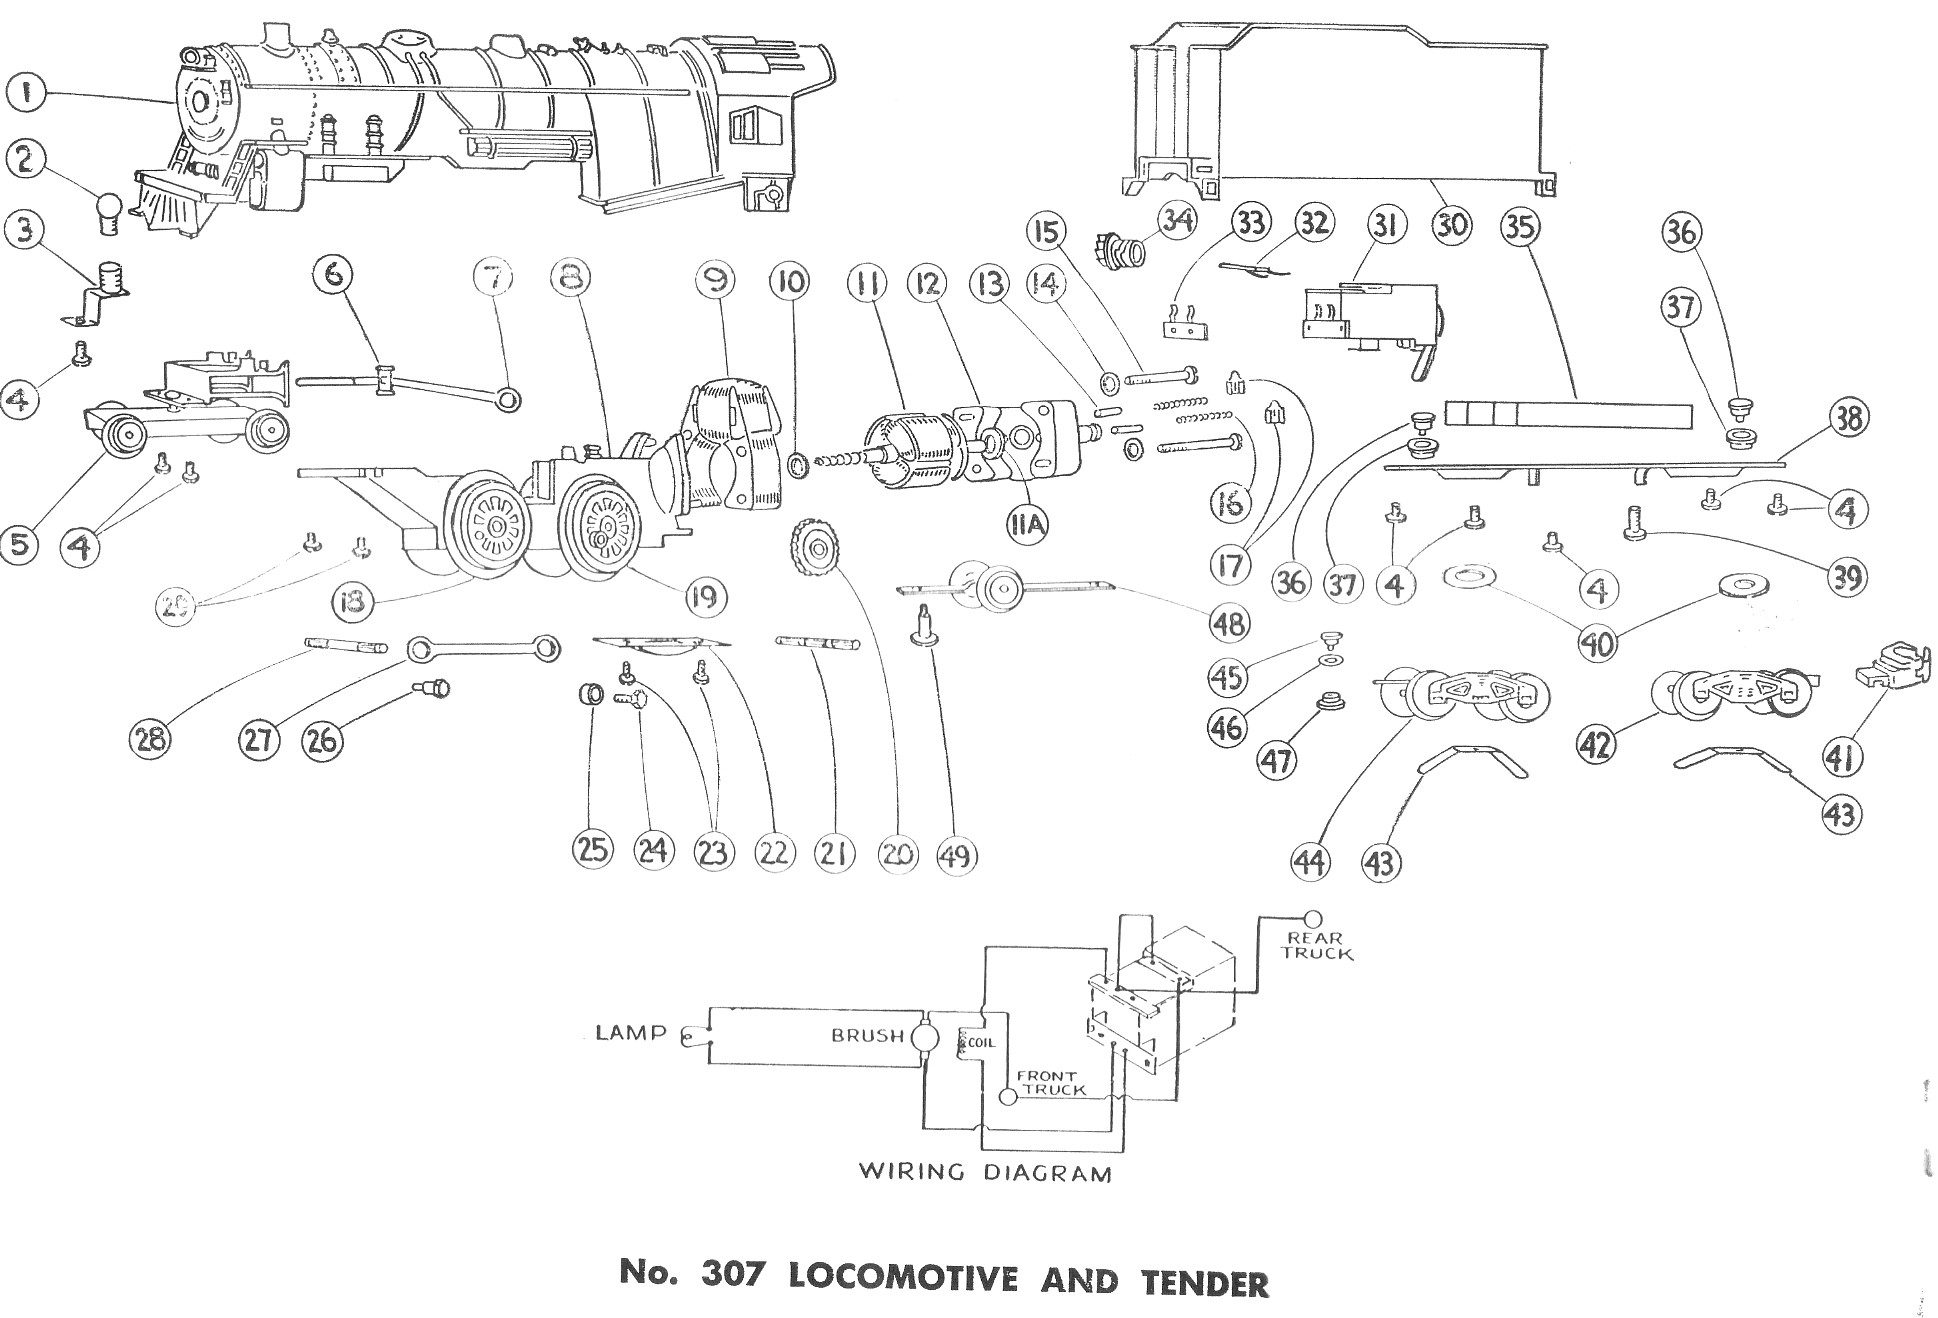 hight resolution of american flyer locomotive 299 307 parts list and diagram athearn parts diagrams locomotive locomotive train parts diagram